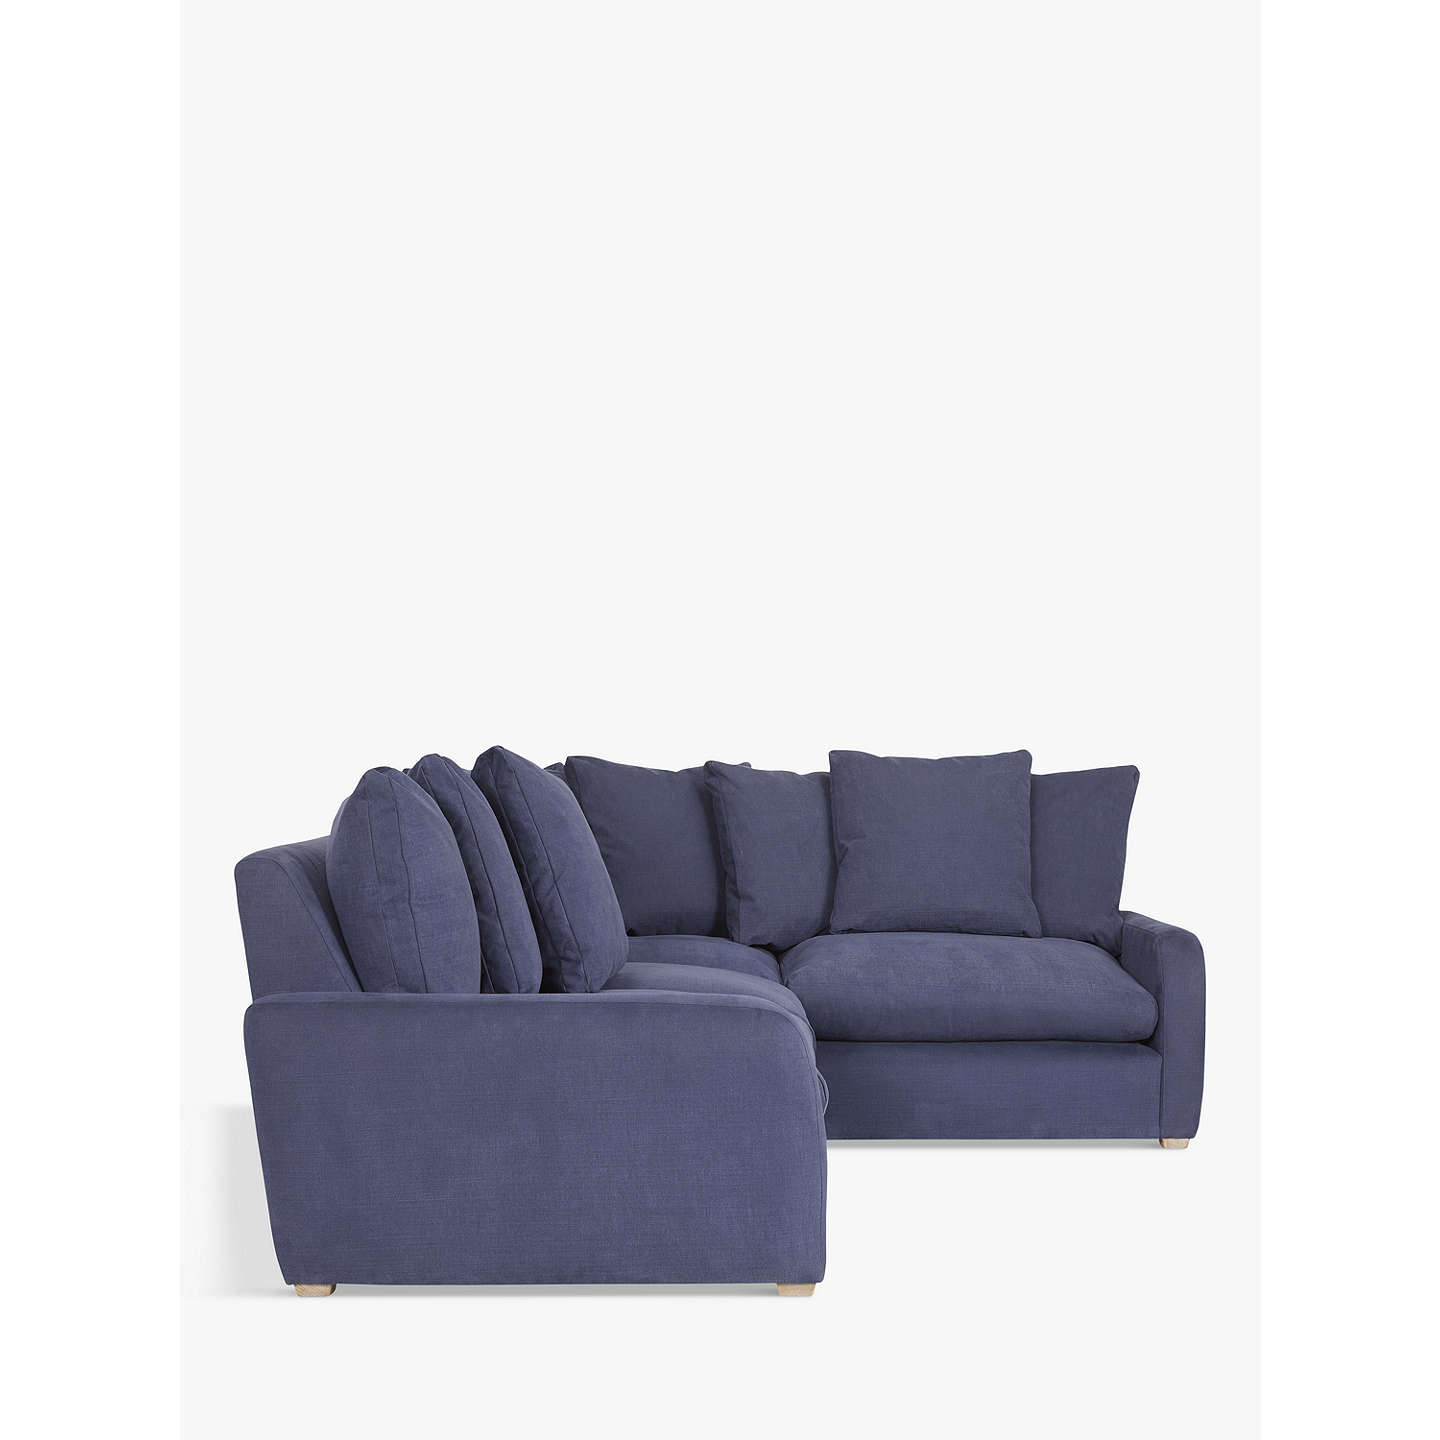 John Lewis Cooper Corner Sofa: Floppy Jo Large RHF Corner End Sofa By Loaf At John Lewis